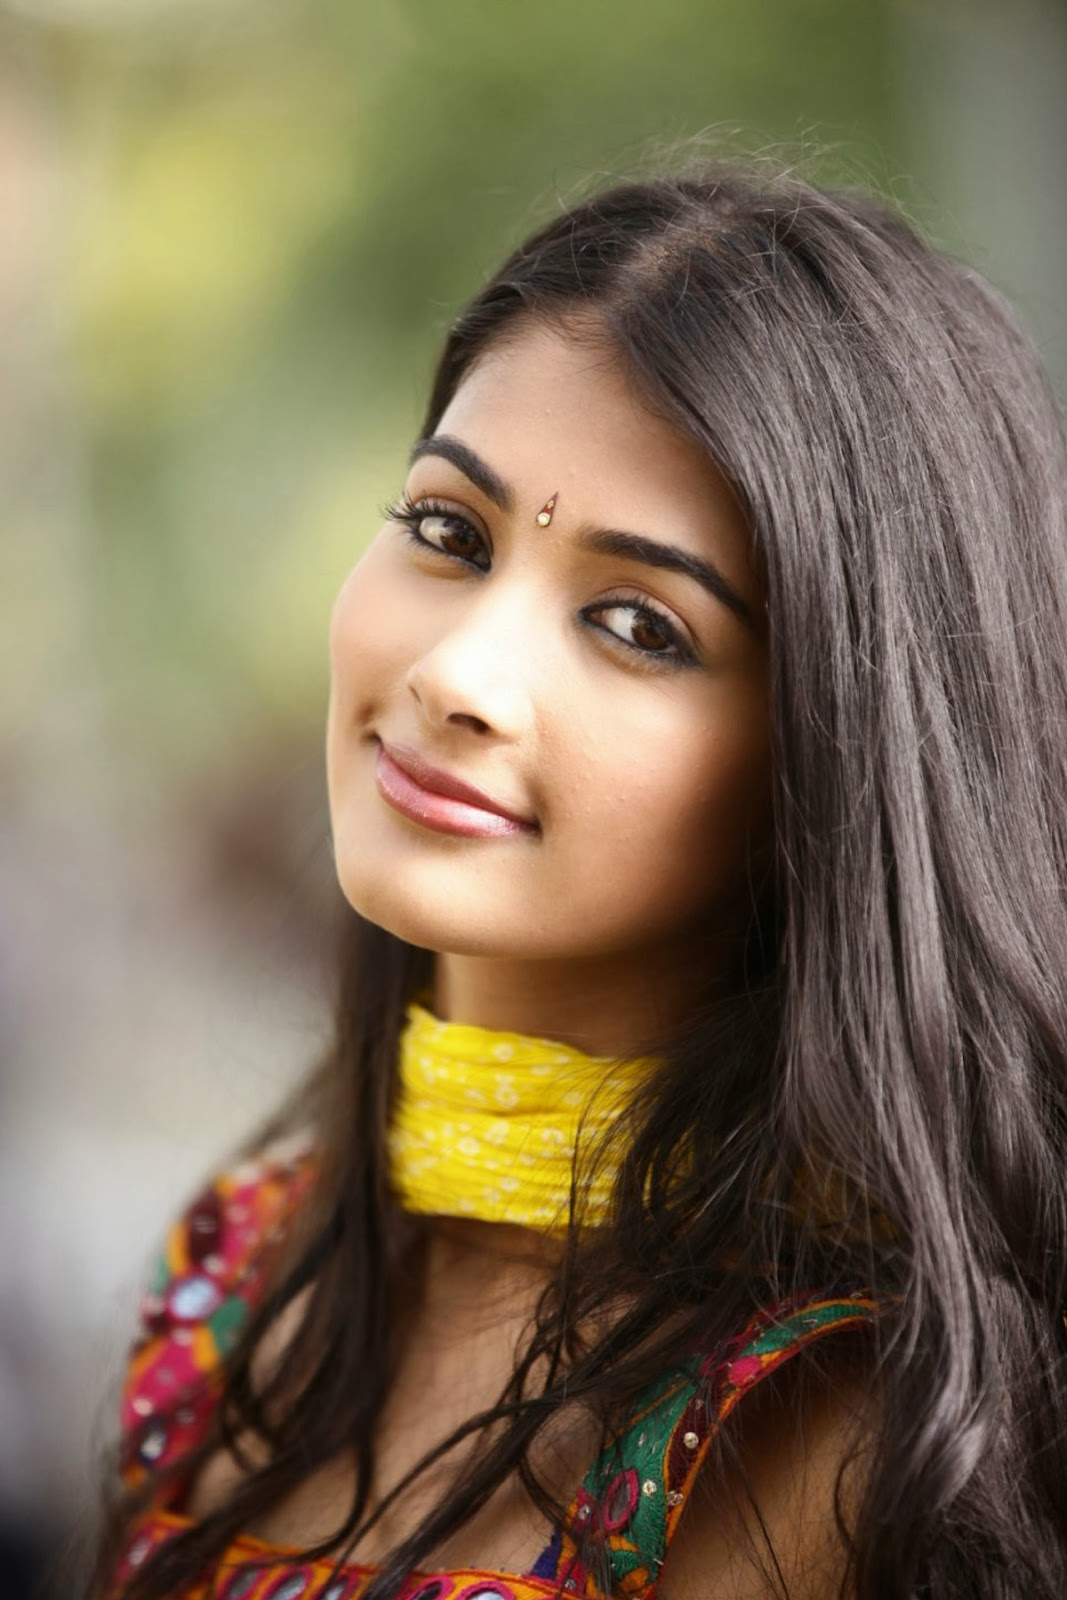 pooja hegde hd wallpapers hd wallpapers high definition